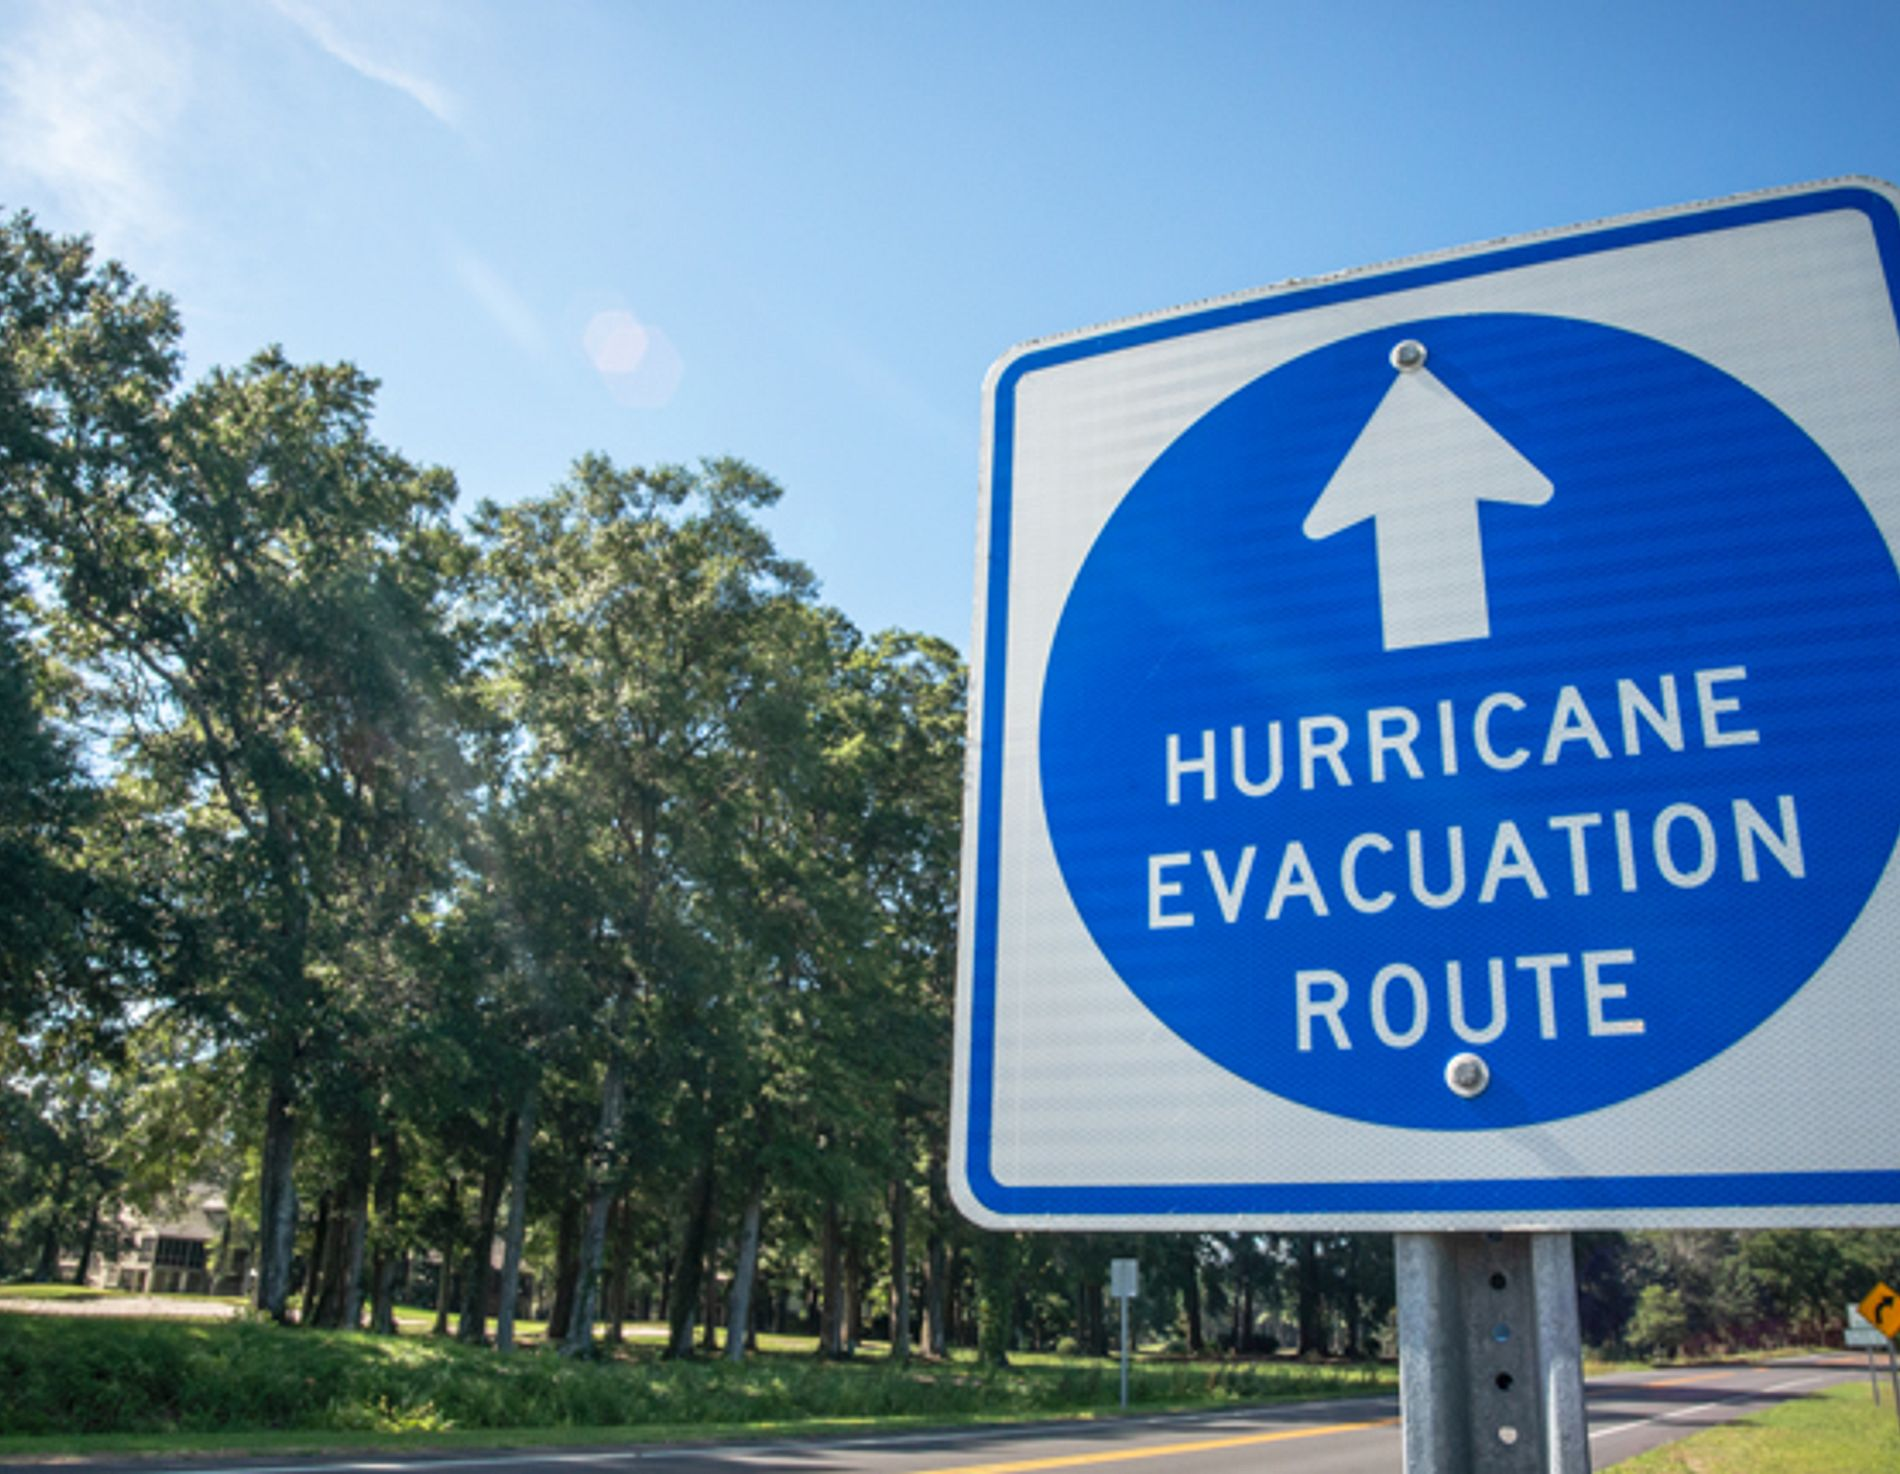 Sign showing a hurricane evacuation route